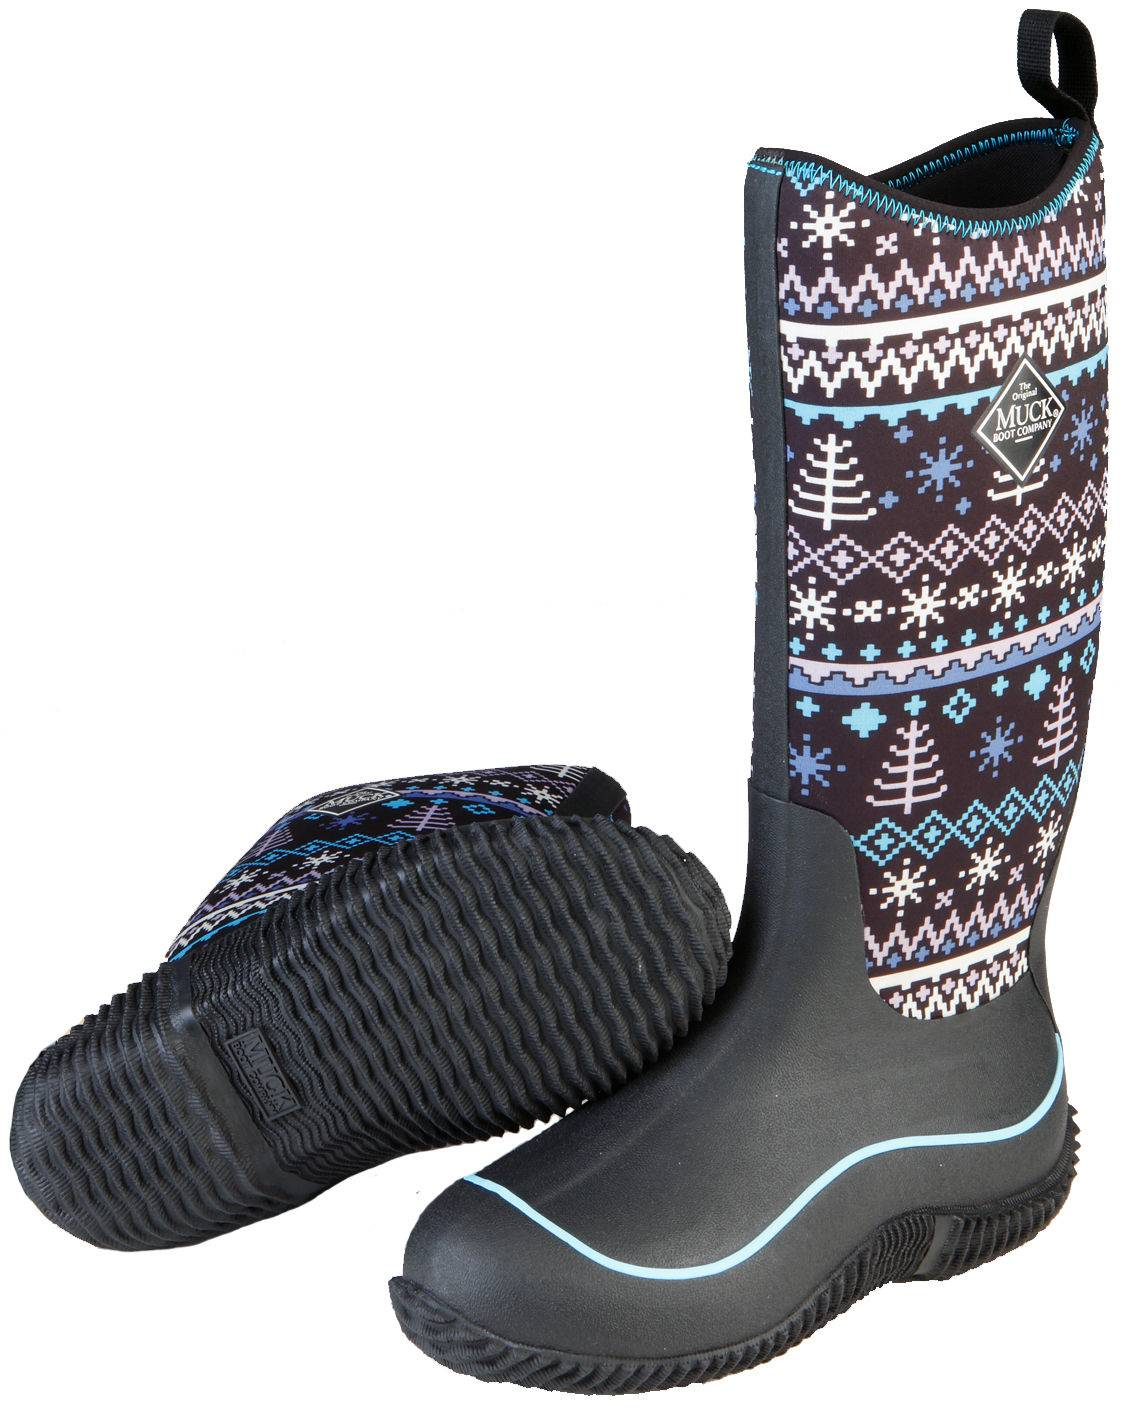 Muck Boots Ladies Hale - Black Winter Knit